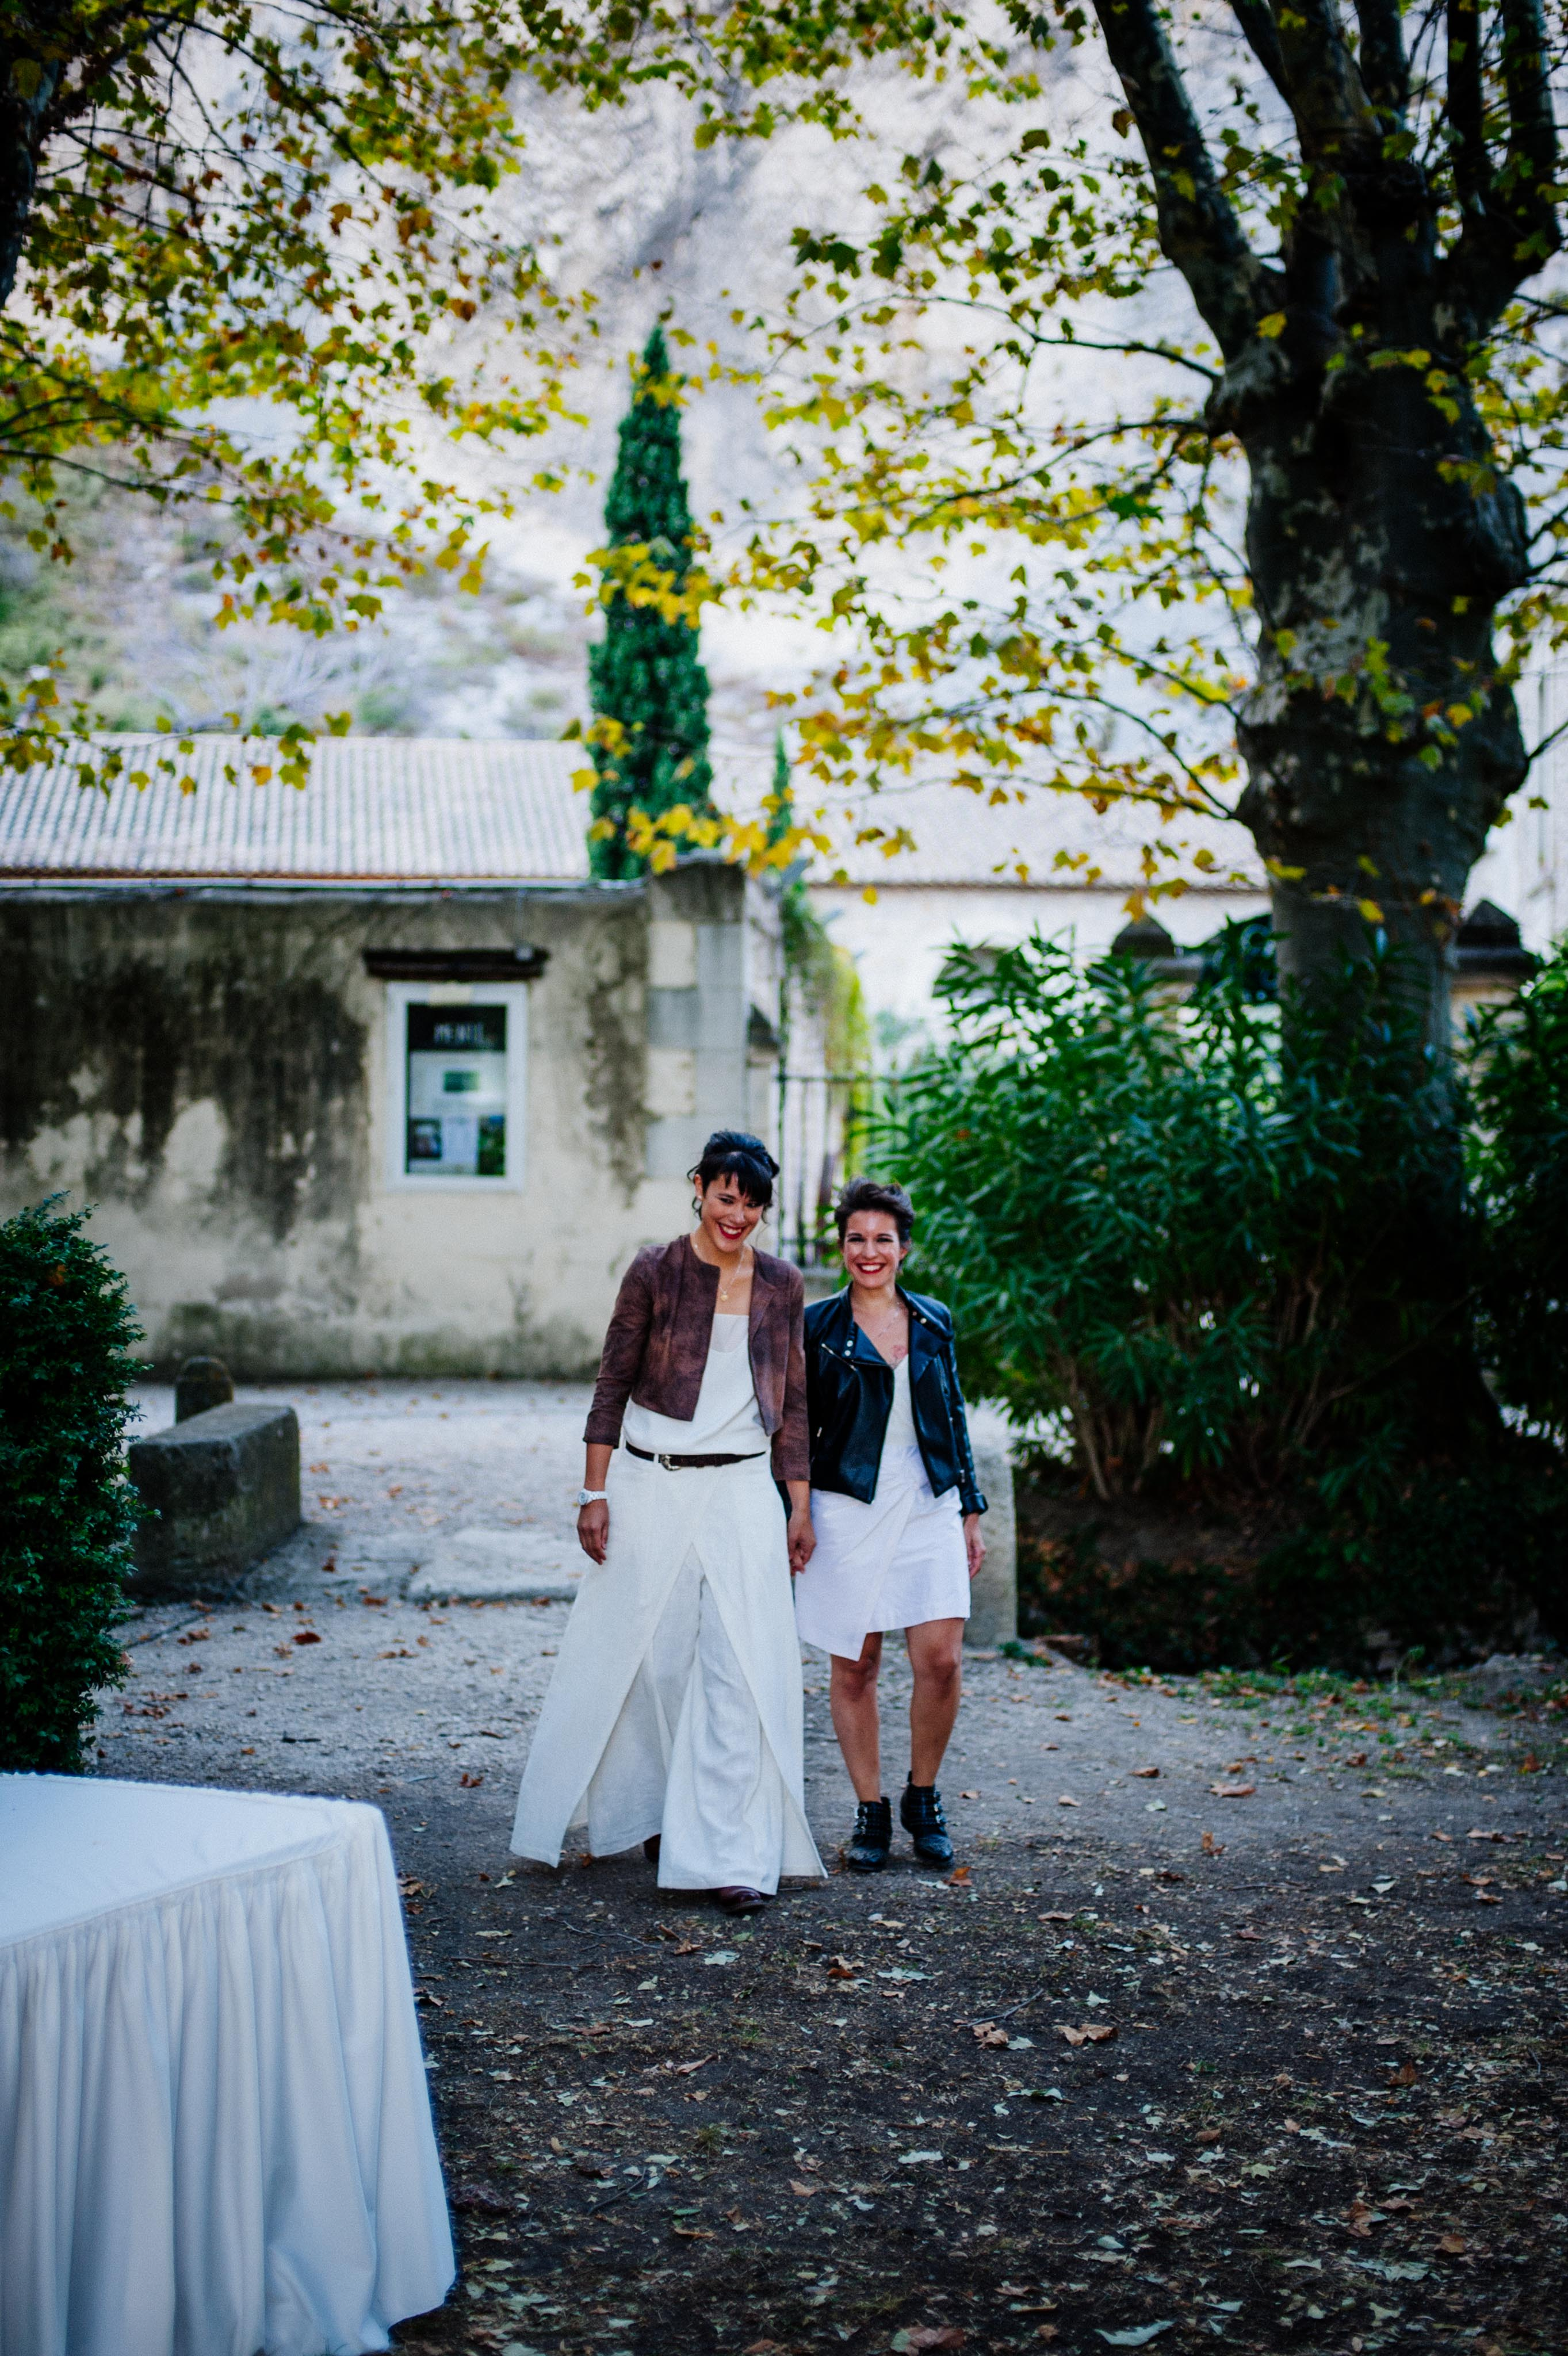 Photographe de mariage à Aix-en-Provence | Wedding photographer in Aix-en-Provence